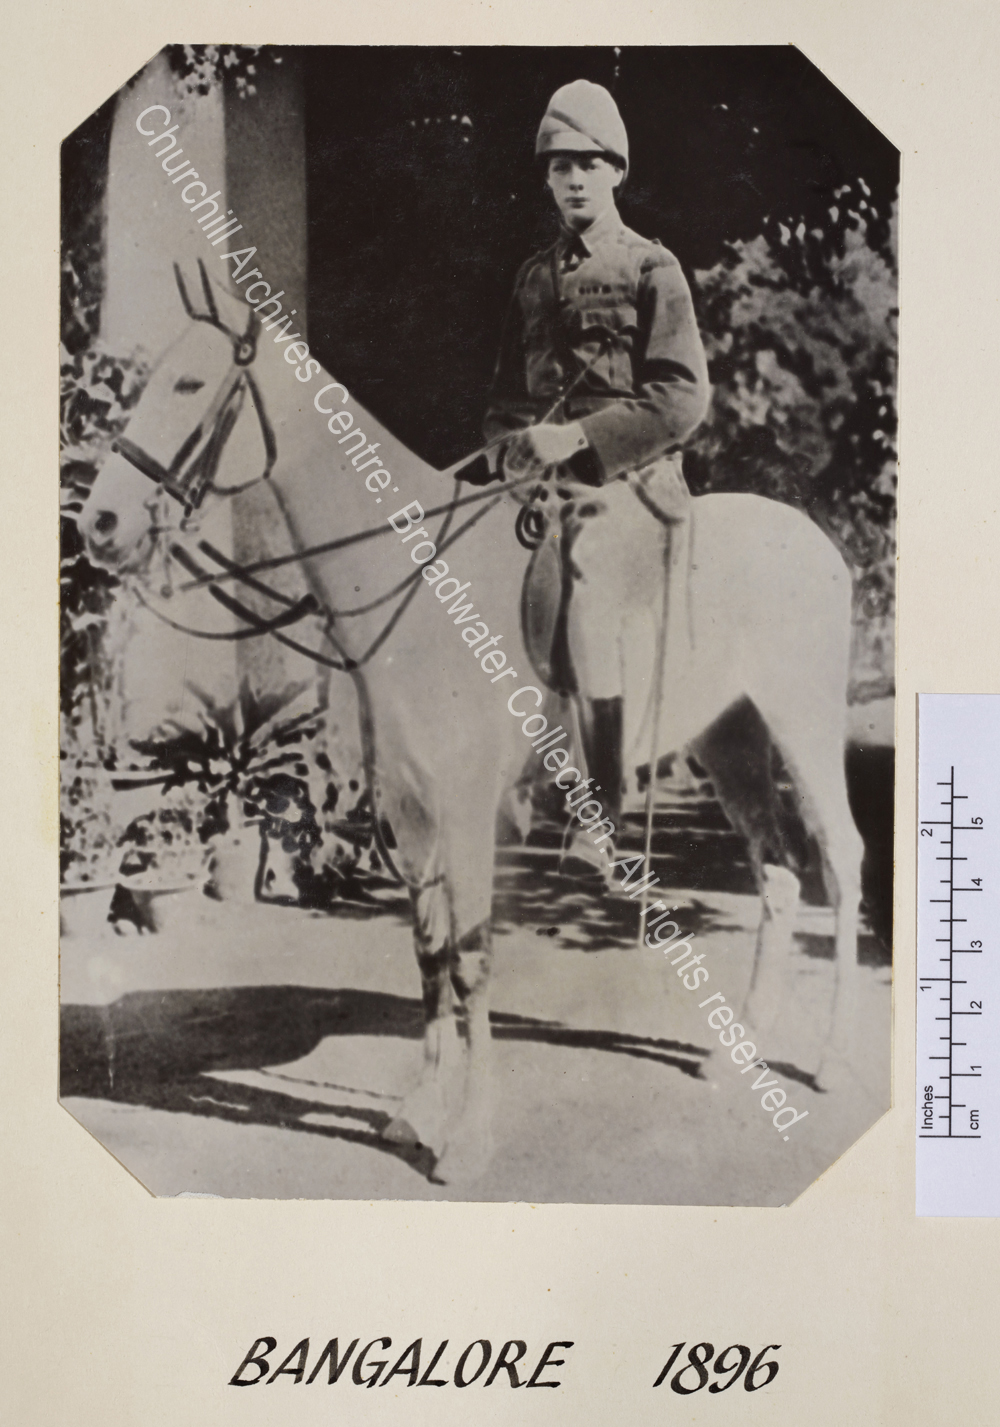 WSC mounted on a grey horse wearing cavalry uniform.